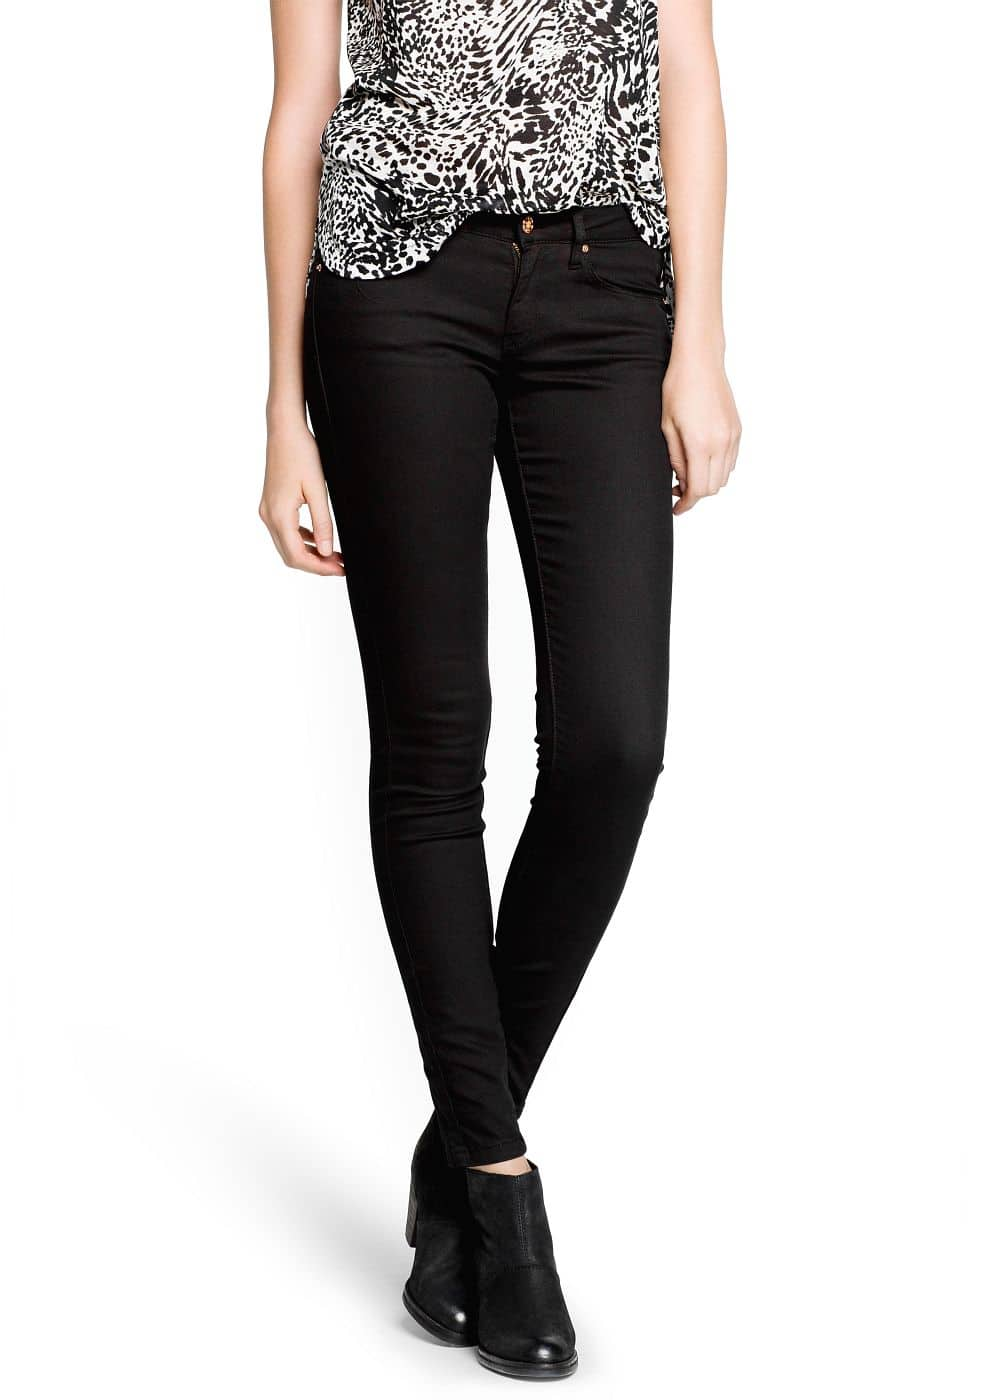 Skinny jeans black women – Global fashion jeans collection